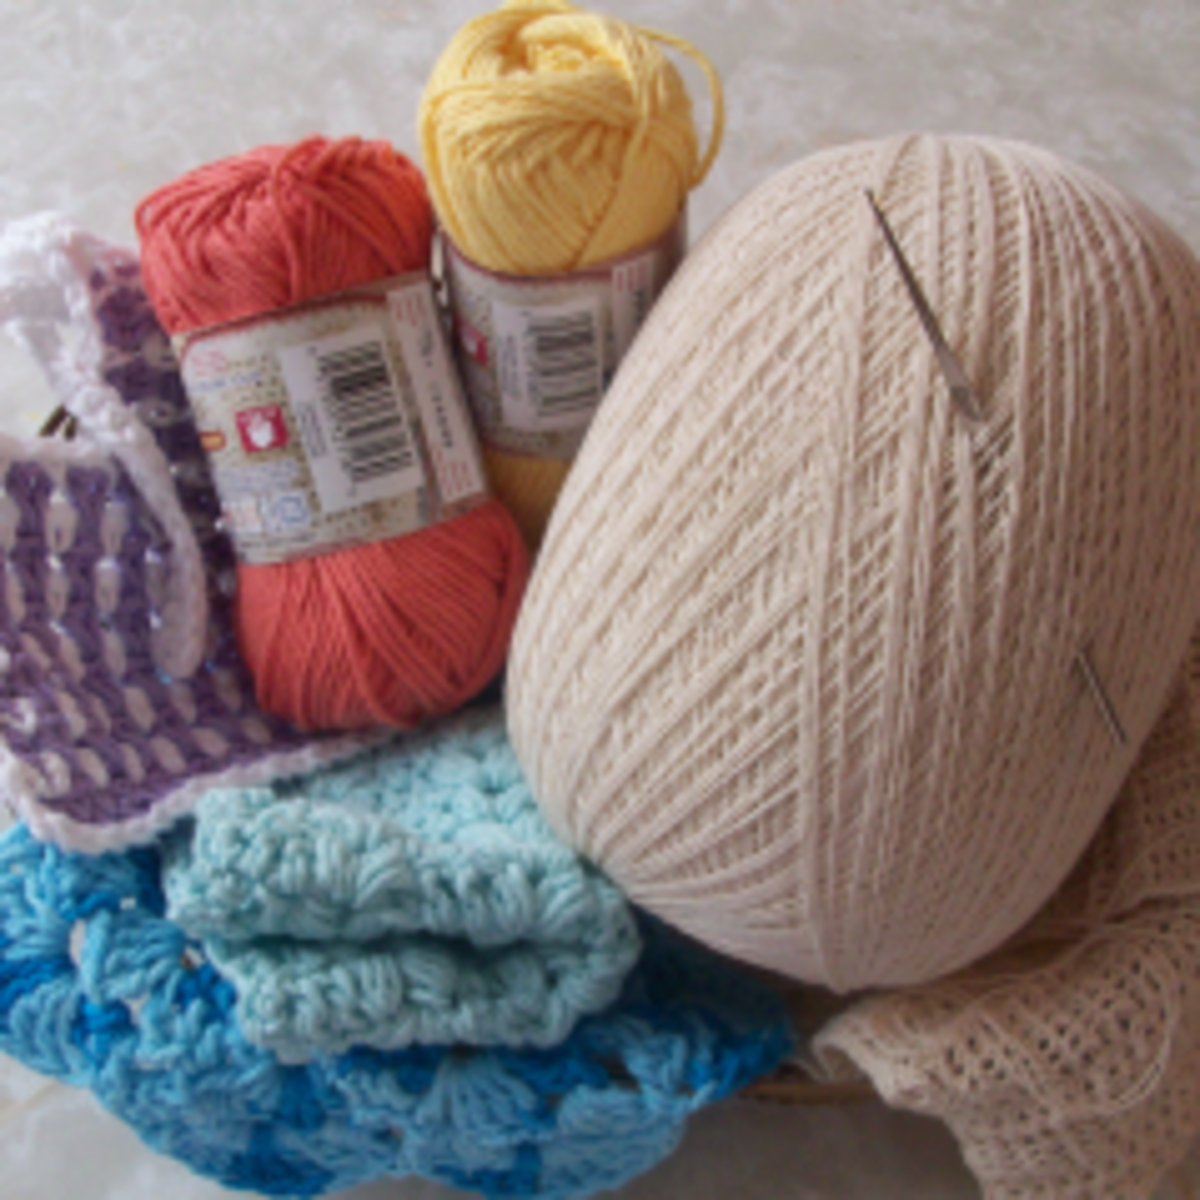 How to Start an Online Crochet Business